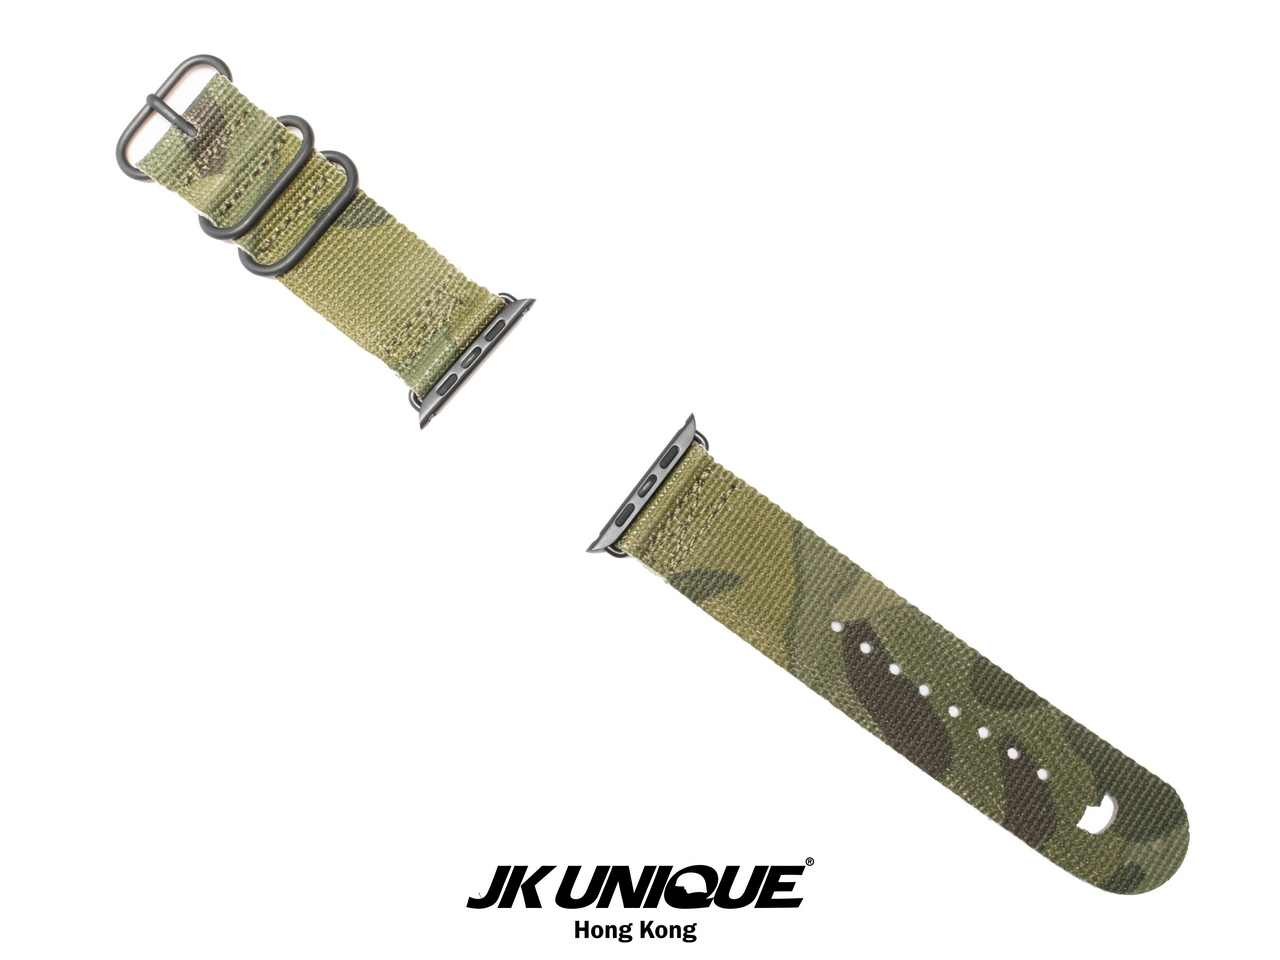 JK-UNIQUE-CAMO-NATO-Apple-Watch-Strap-42mm-BK-Multicam-Tropic-1 (1280).jpg